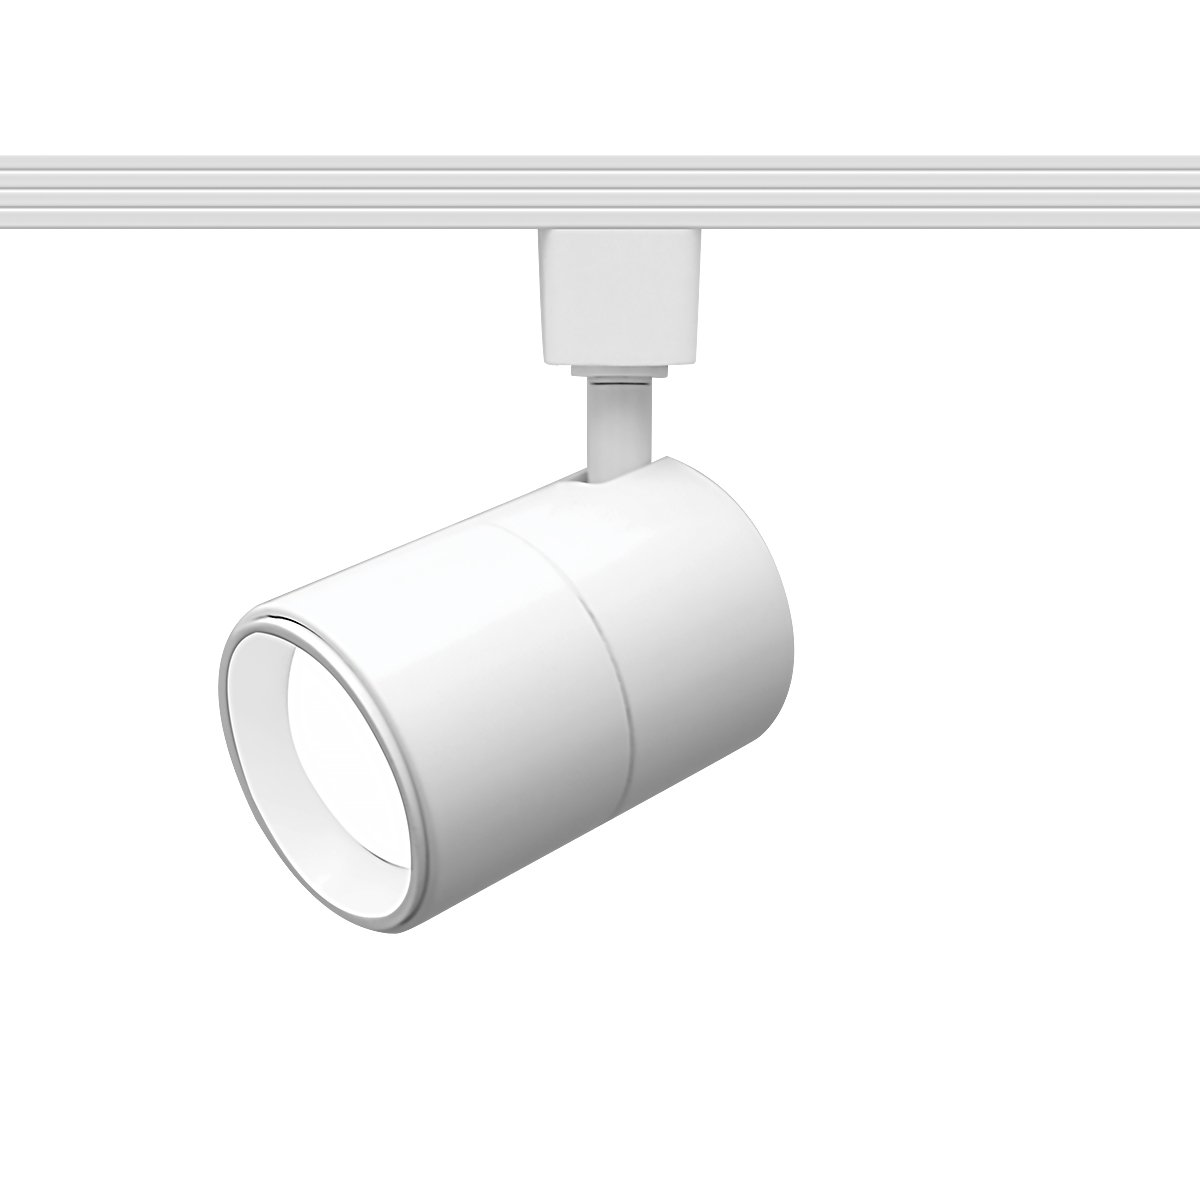 wac lighting hledwt contemporary summit acled w  - wac lighting hledwt contemporary summit acled w beamshift linevoltage cylinder htrack head   amazoncom